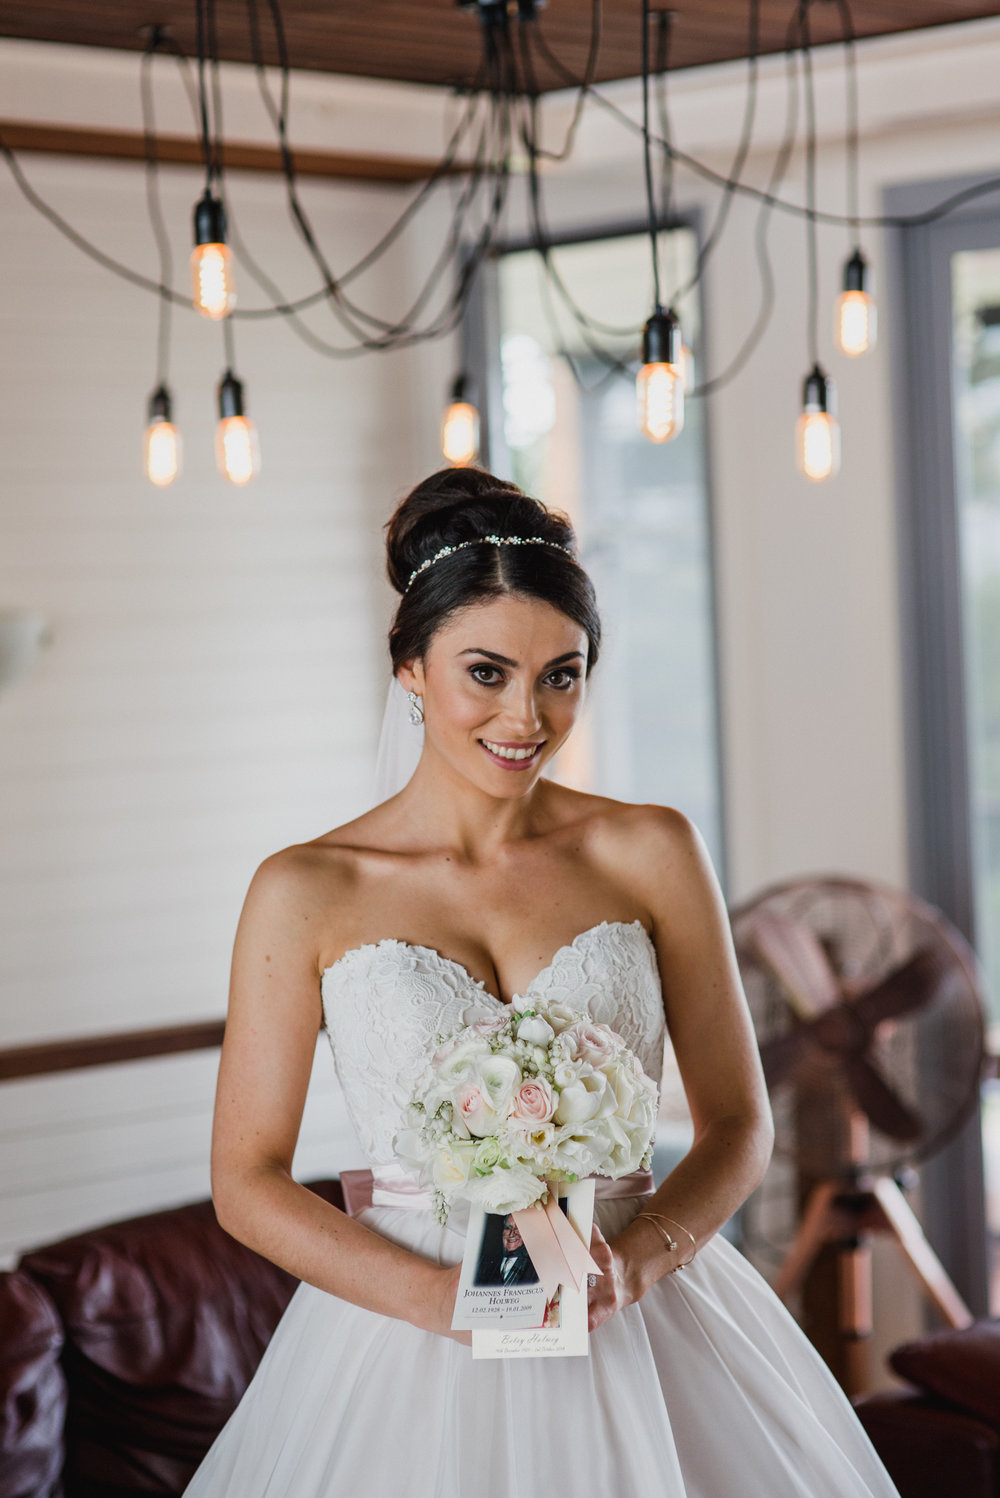 Brisbane_wedding_bridal_makeup_hair-Twidale-13.jpg